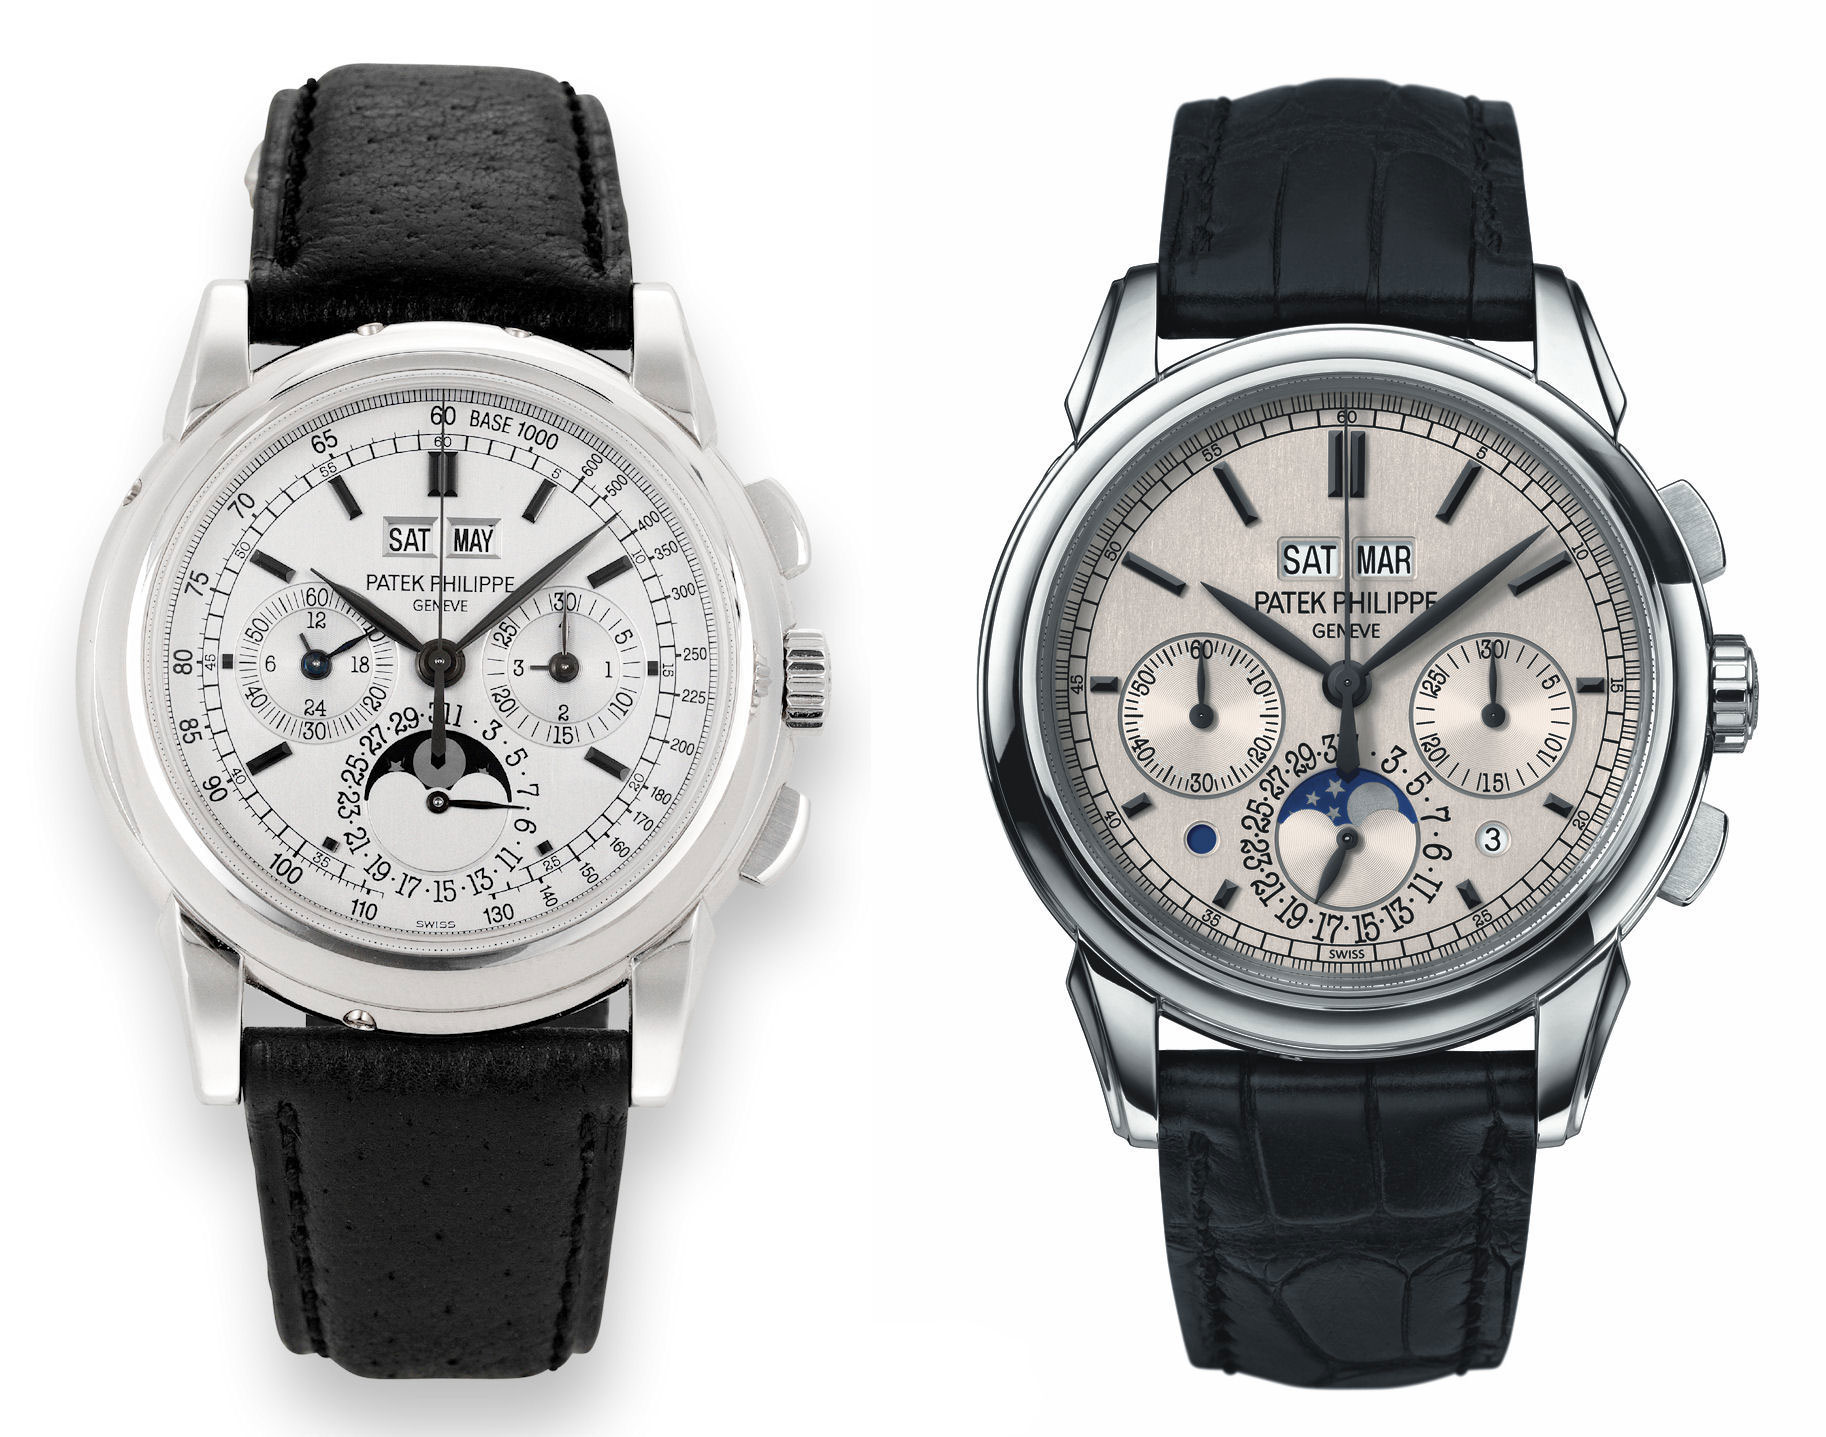 Patek Philippe 5970 and 5270